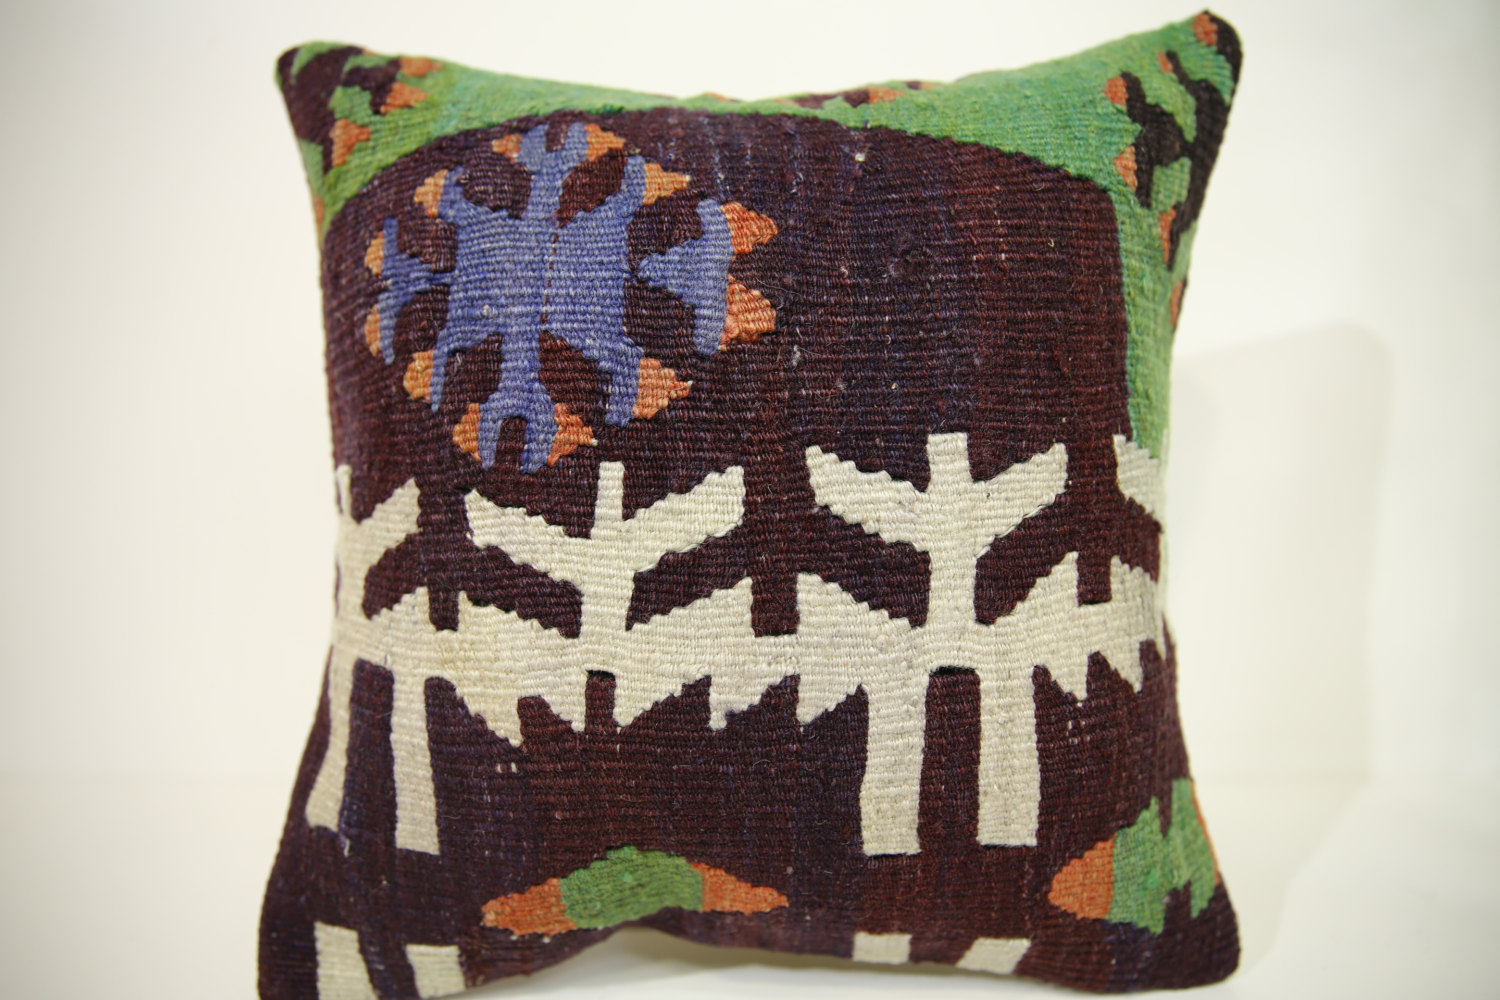 Kilim Pillows | 14x14 | Kelim pillows | 1221 | Turkish pillows , Kilim cushion